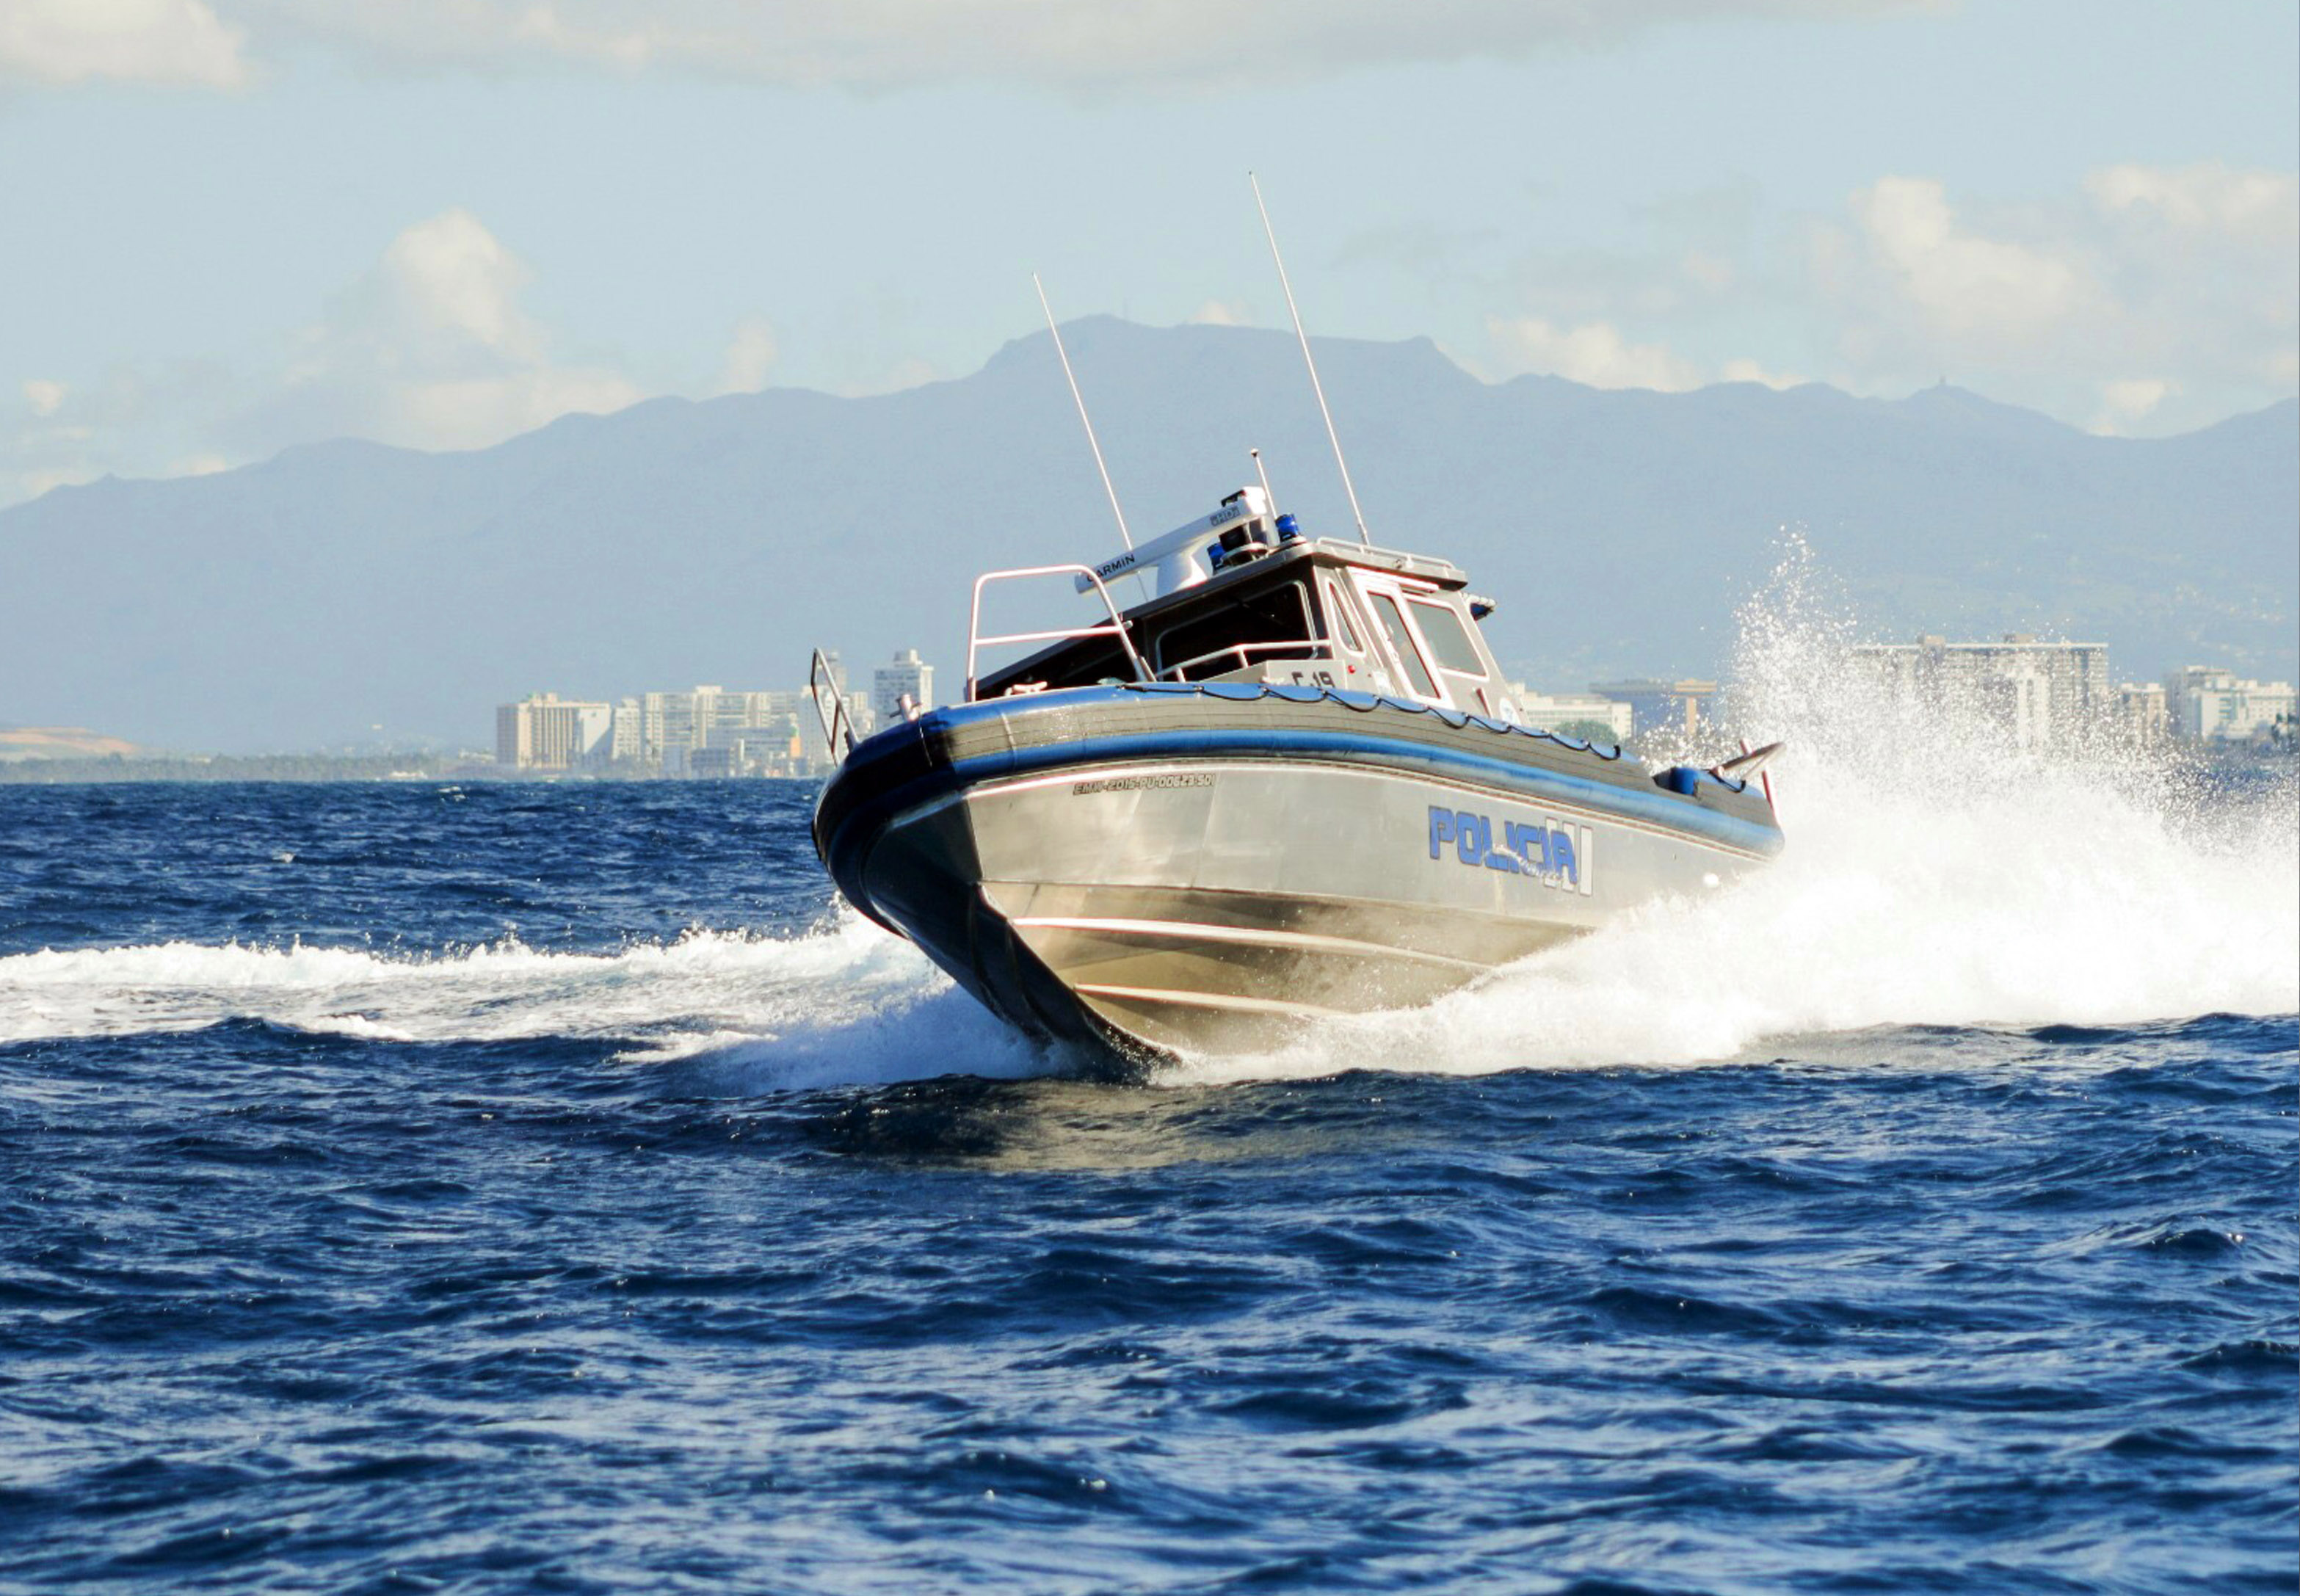 January 15, 2018: Another New Metal Shark Patrol Boat Joins the ...